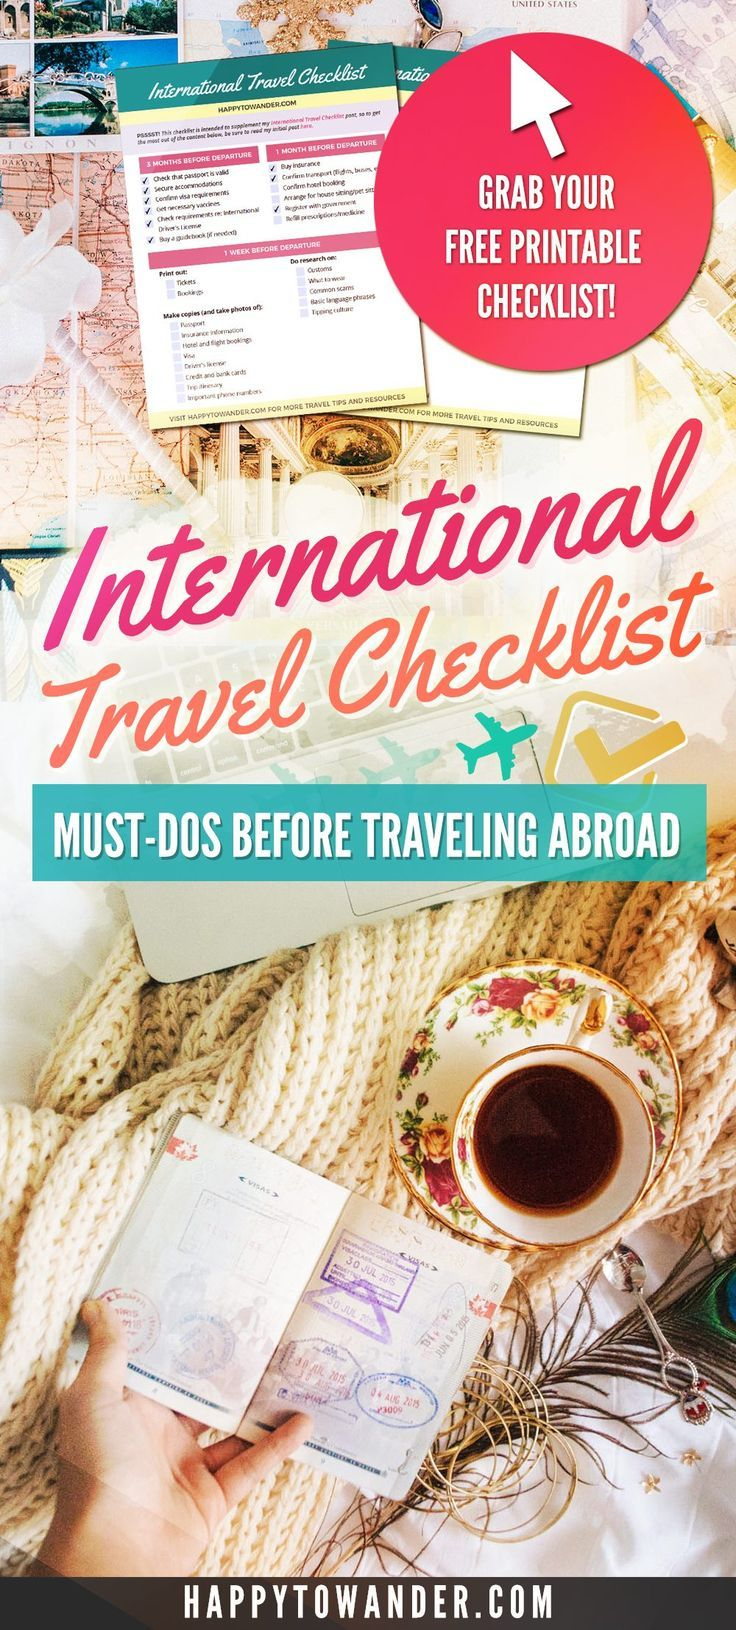 THE best predeparture checklist for International Travel. If you plan to be traveling abroad, you need to save this list! It breaks down all the important things you need to do before you travel 3 months, 1 month, 1 week, 1 day and the day-of your departure. This International Travel checklist is a must for staying organized!